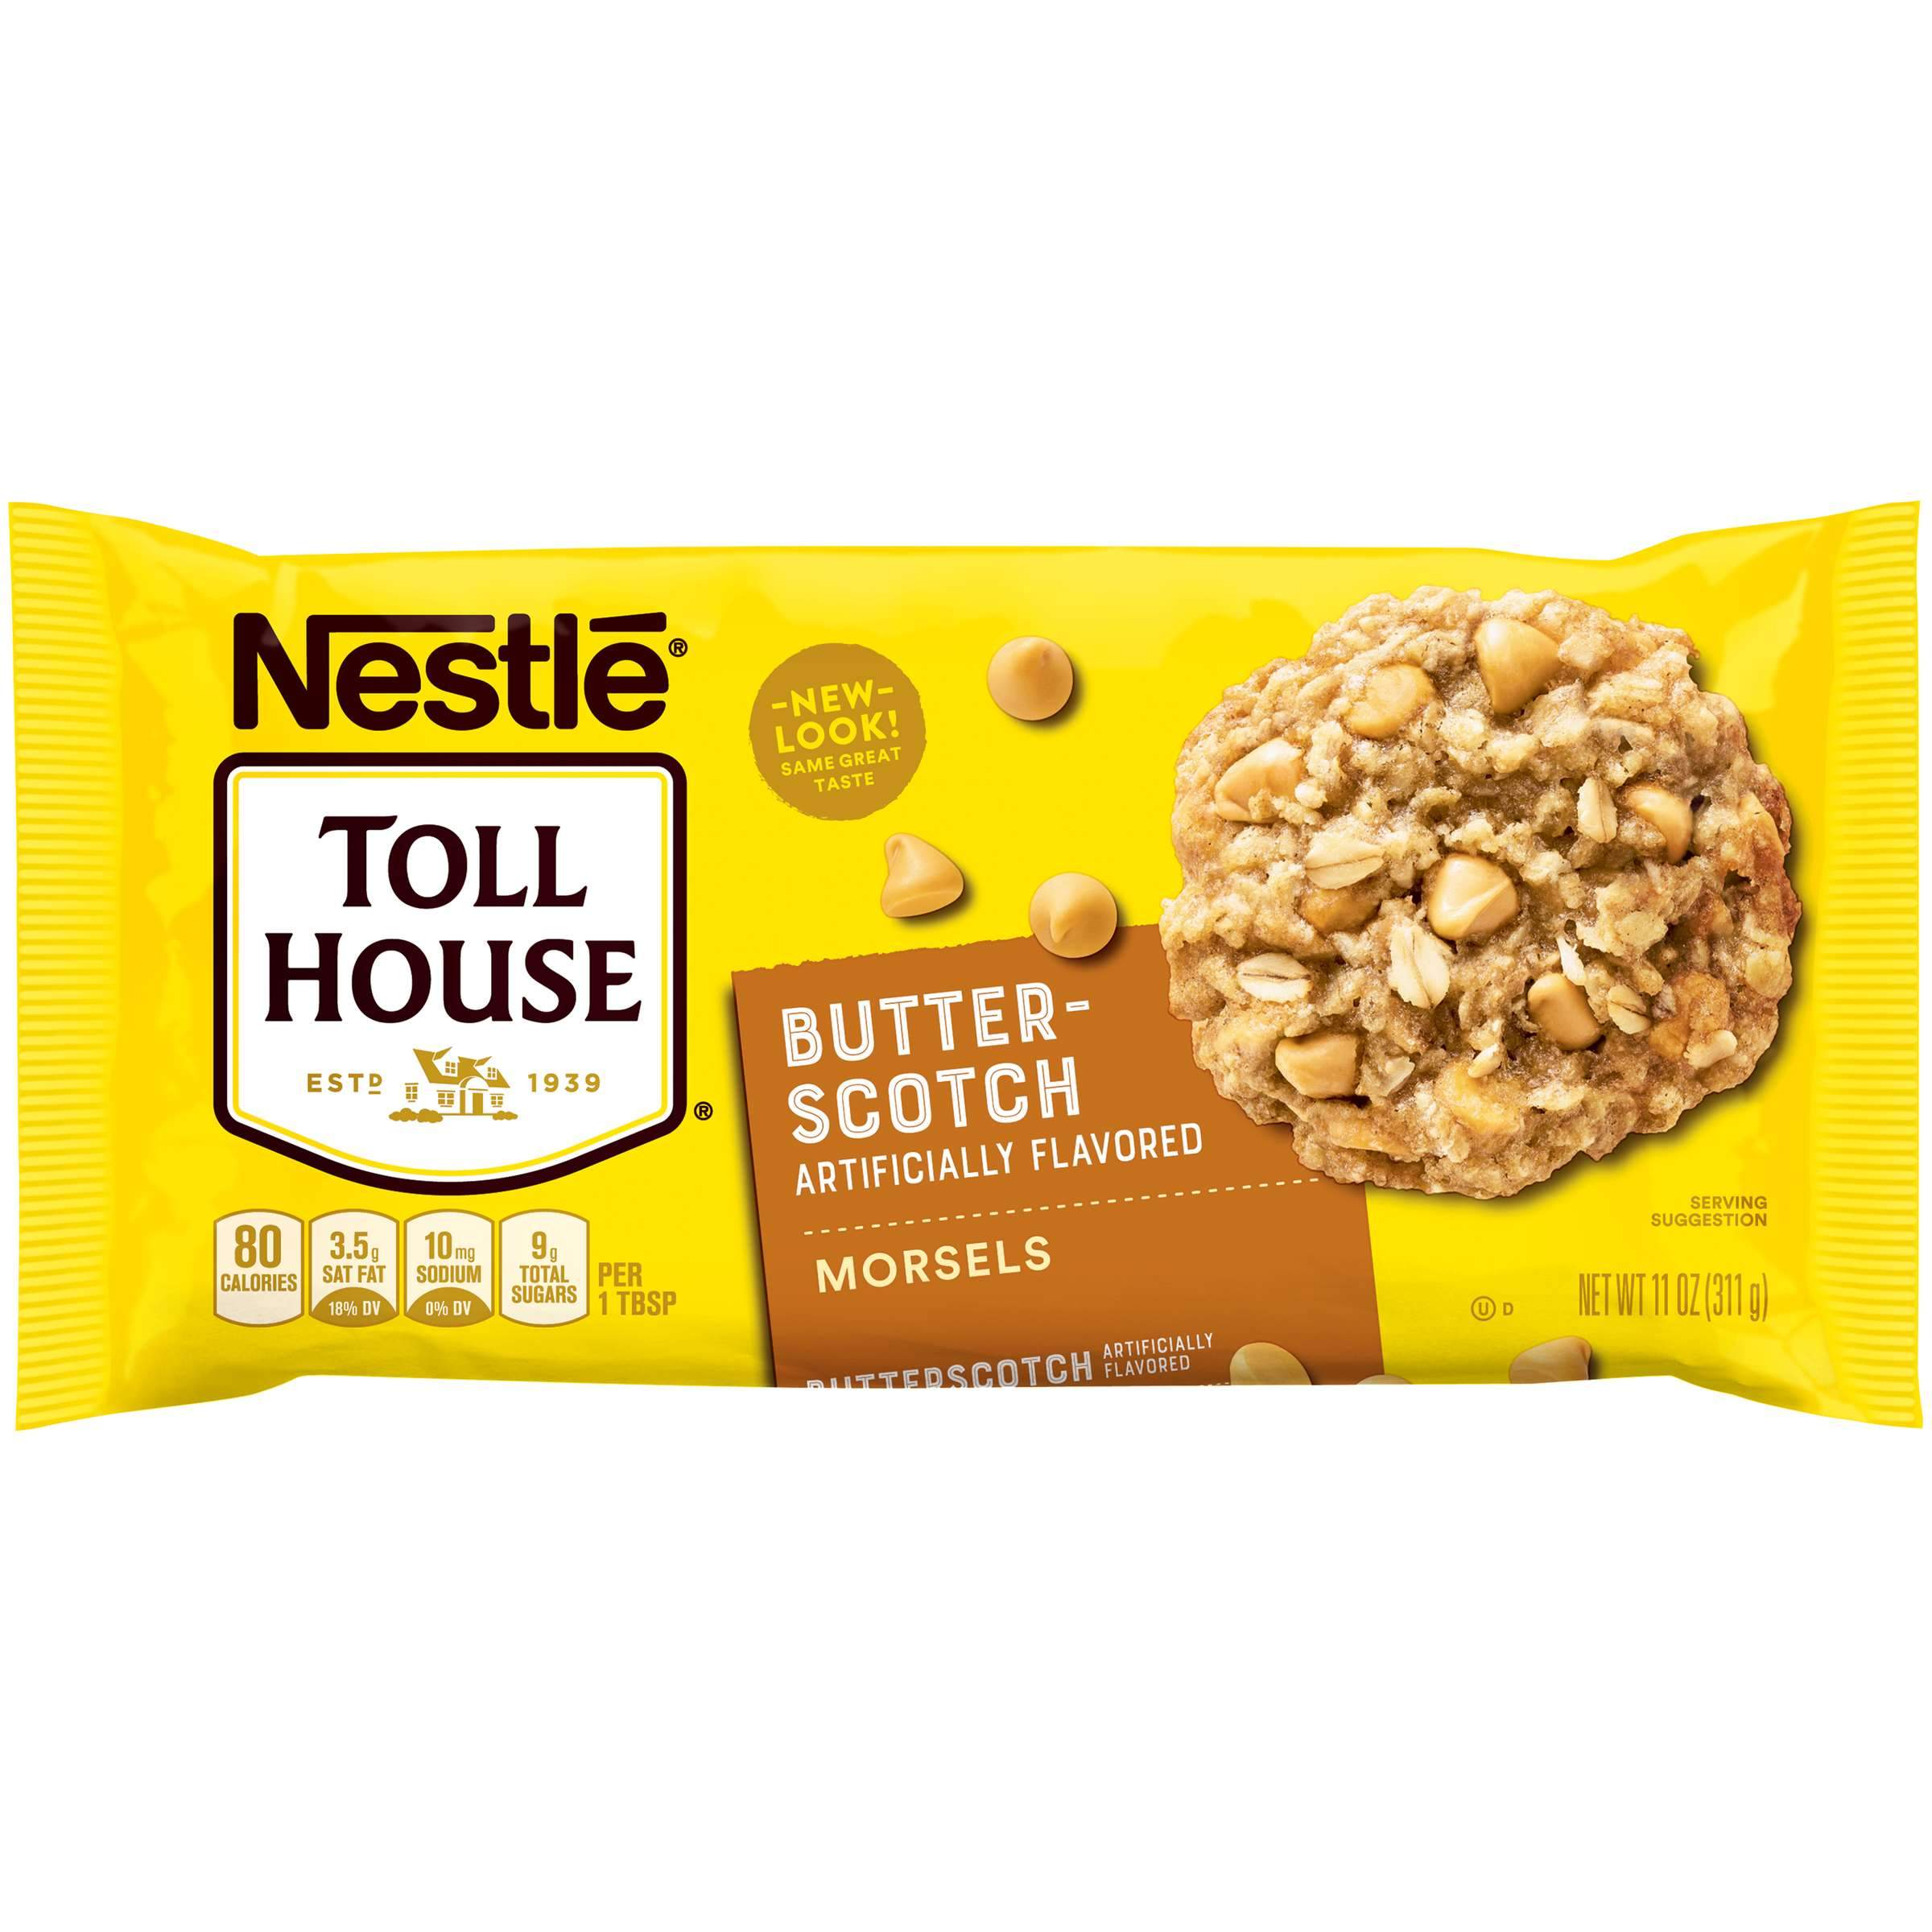 Nestlé Toll House Baking Morsels Toll House Butterscotch 11 Ounce